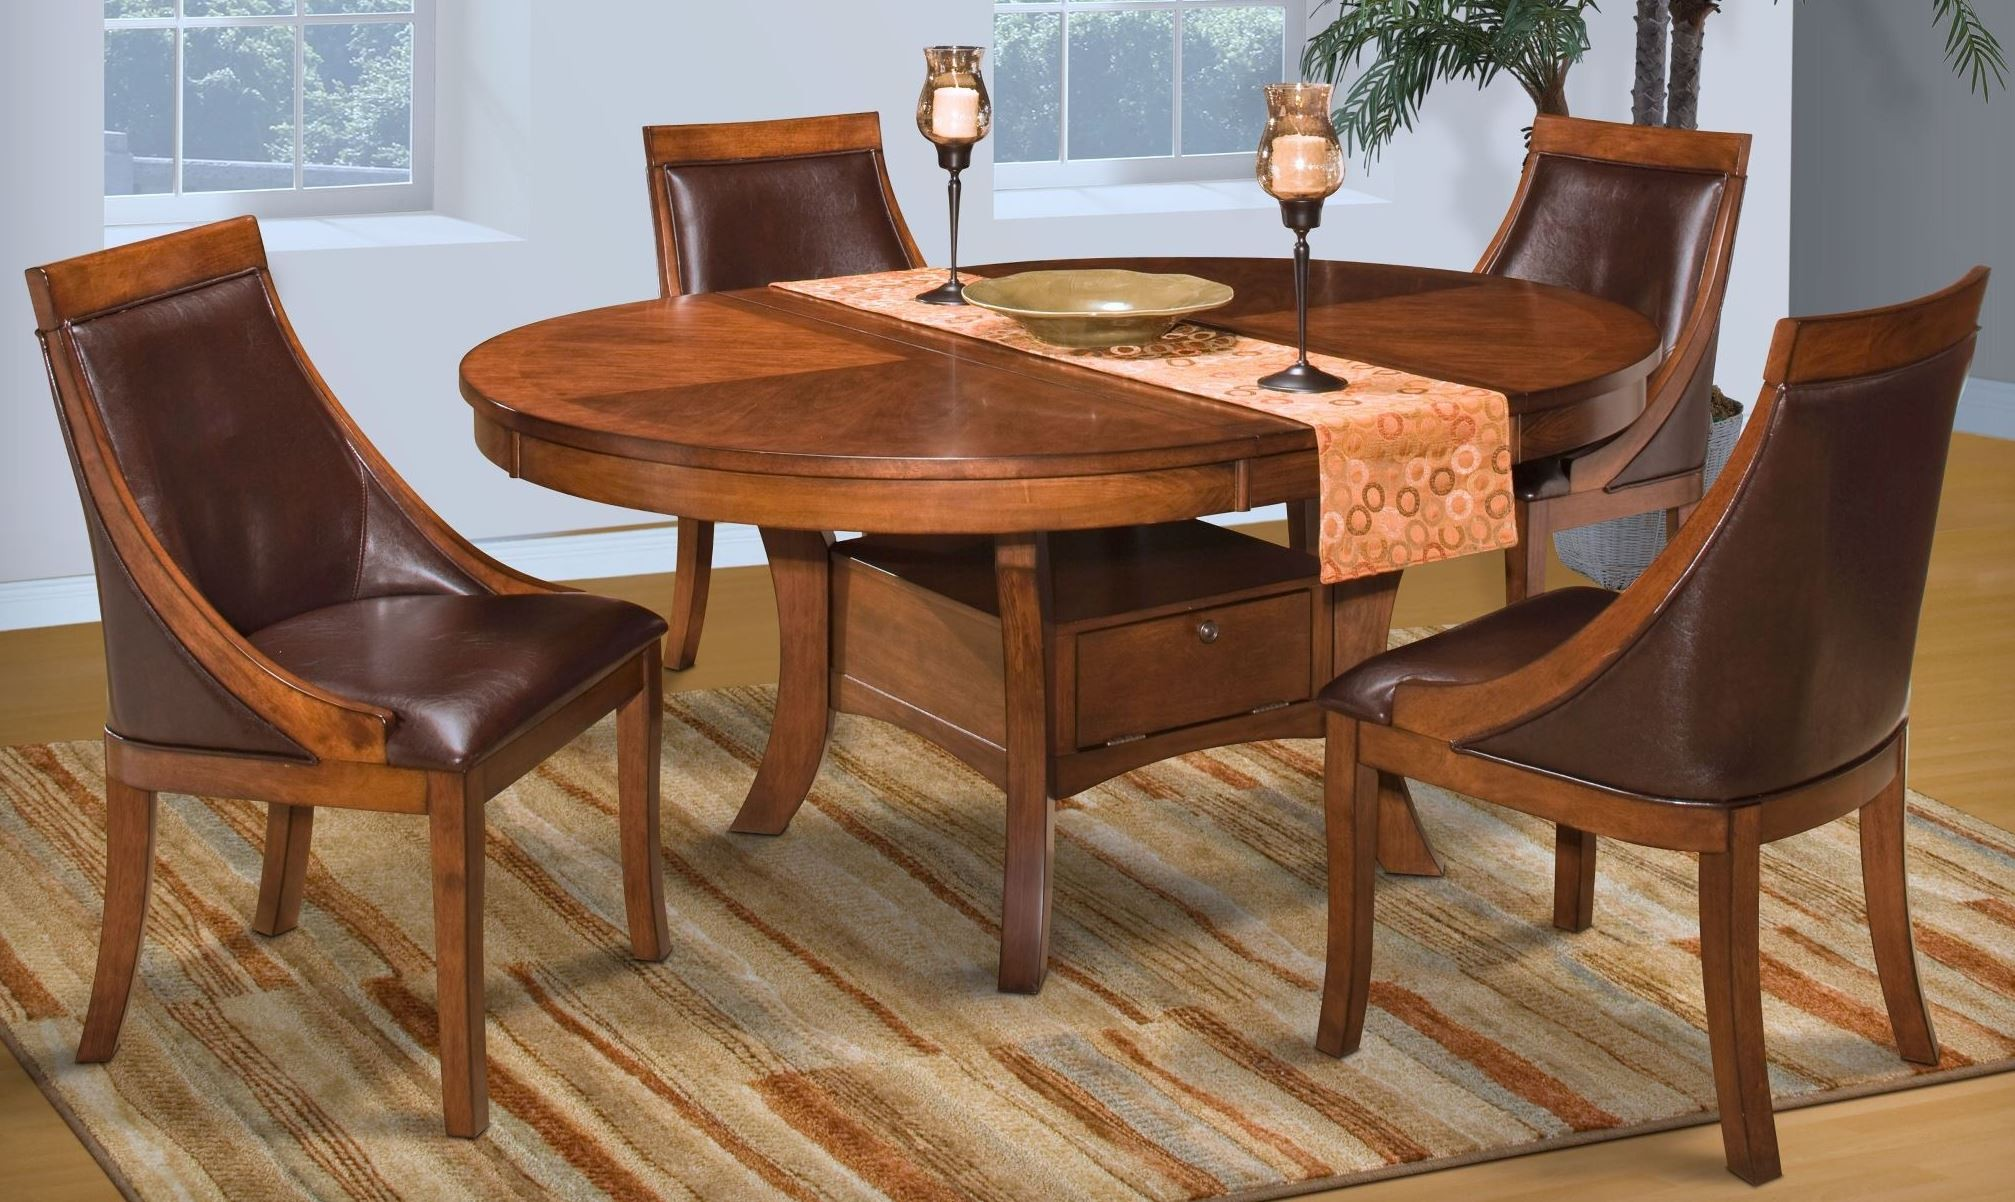 Aspen Round Extendable Dining Room Set From New Classics 40 116 11 11B Co